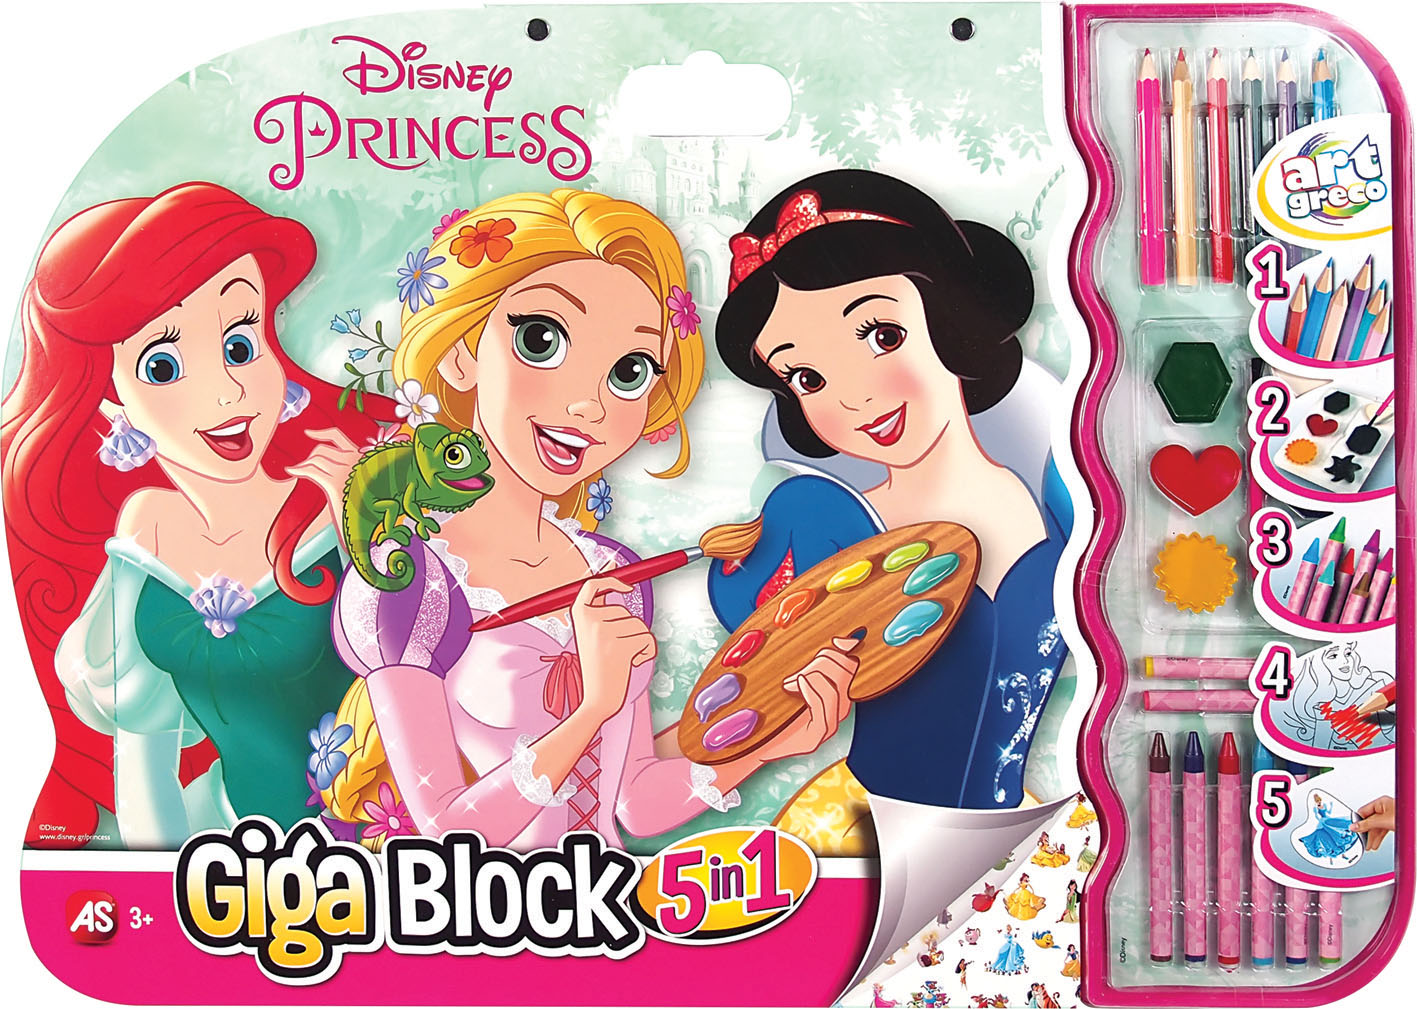 GIGA BLOCK PRINCESS 5 IN 1